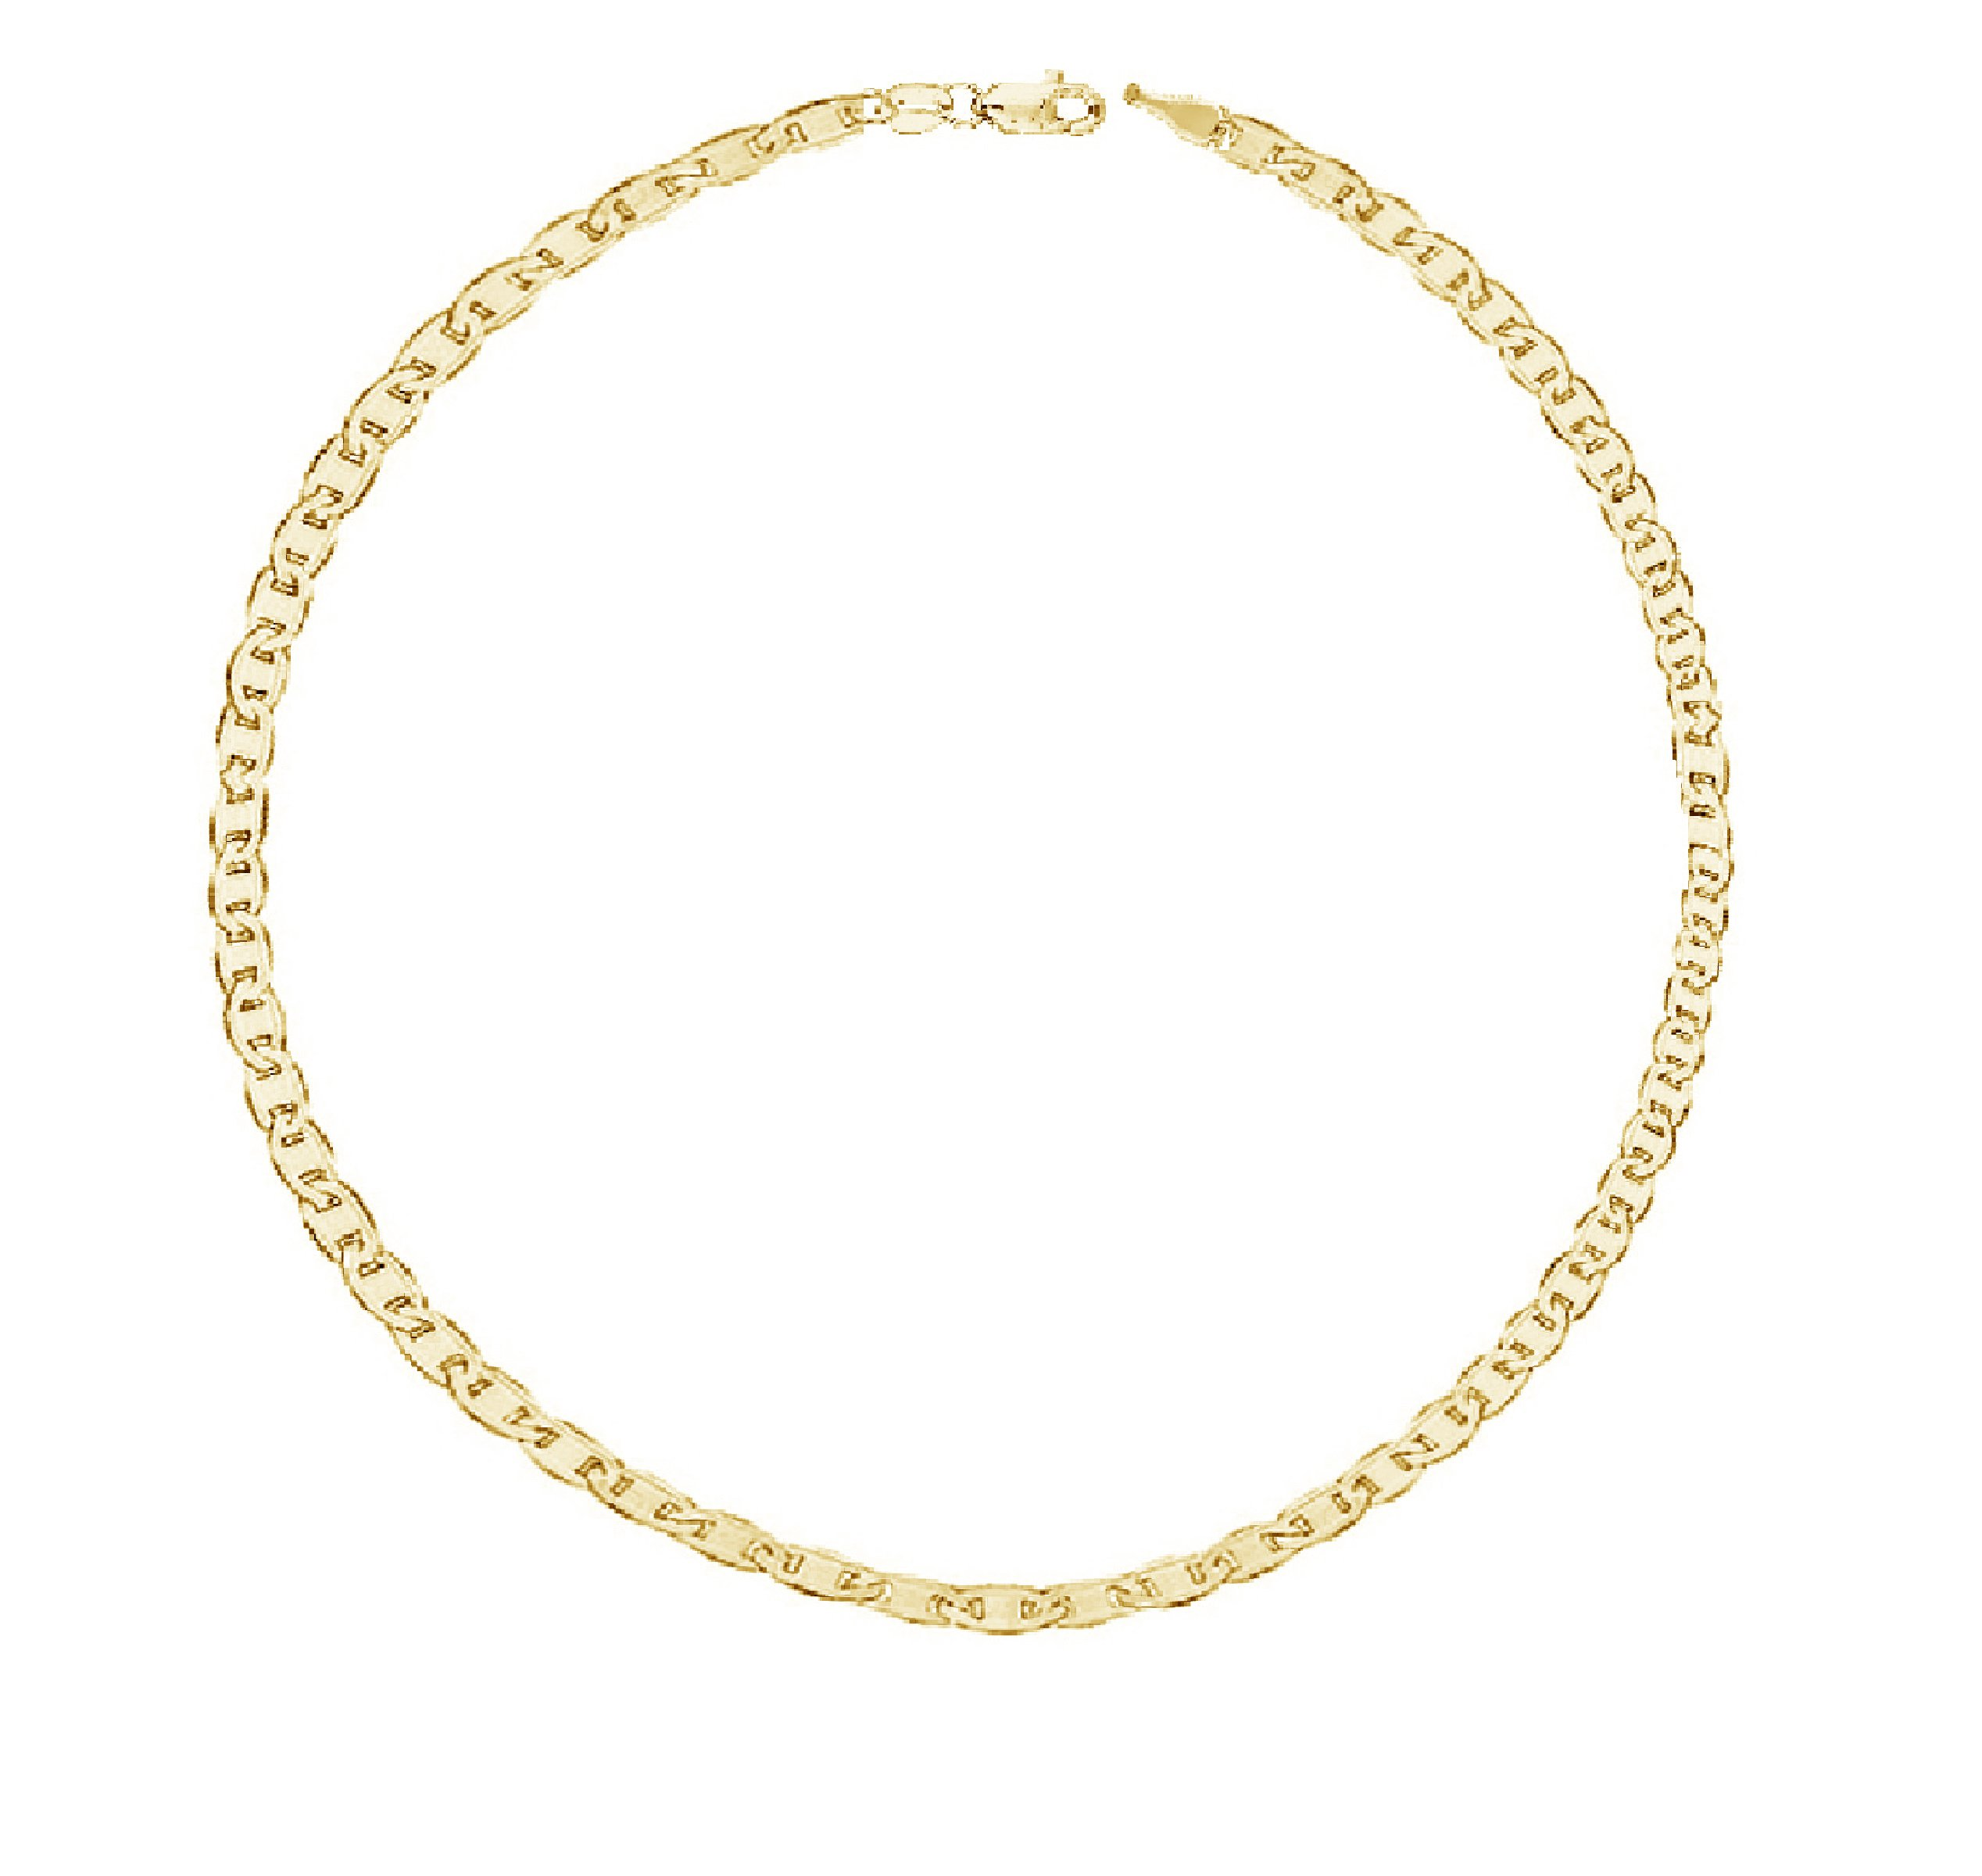 14K Yellow Gold Mariner Link Anklet or Chain Necklace 1.7mm